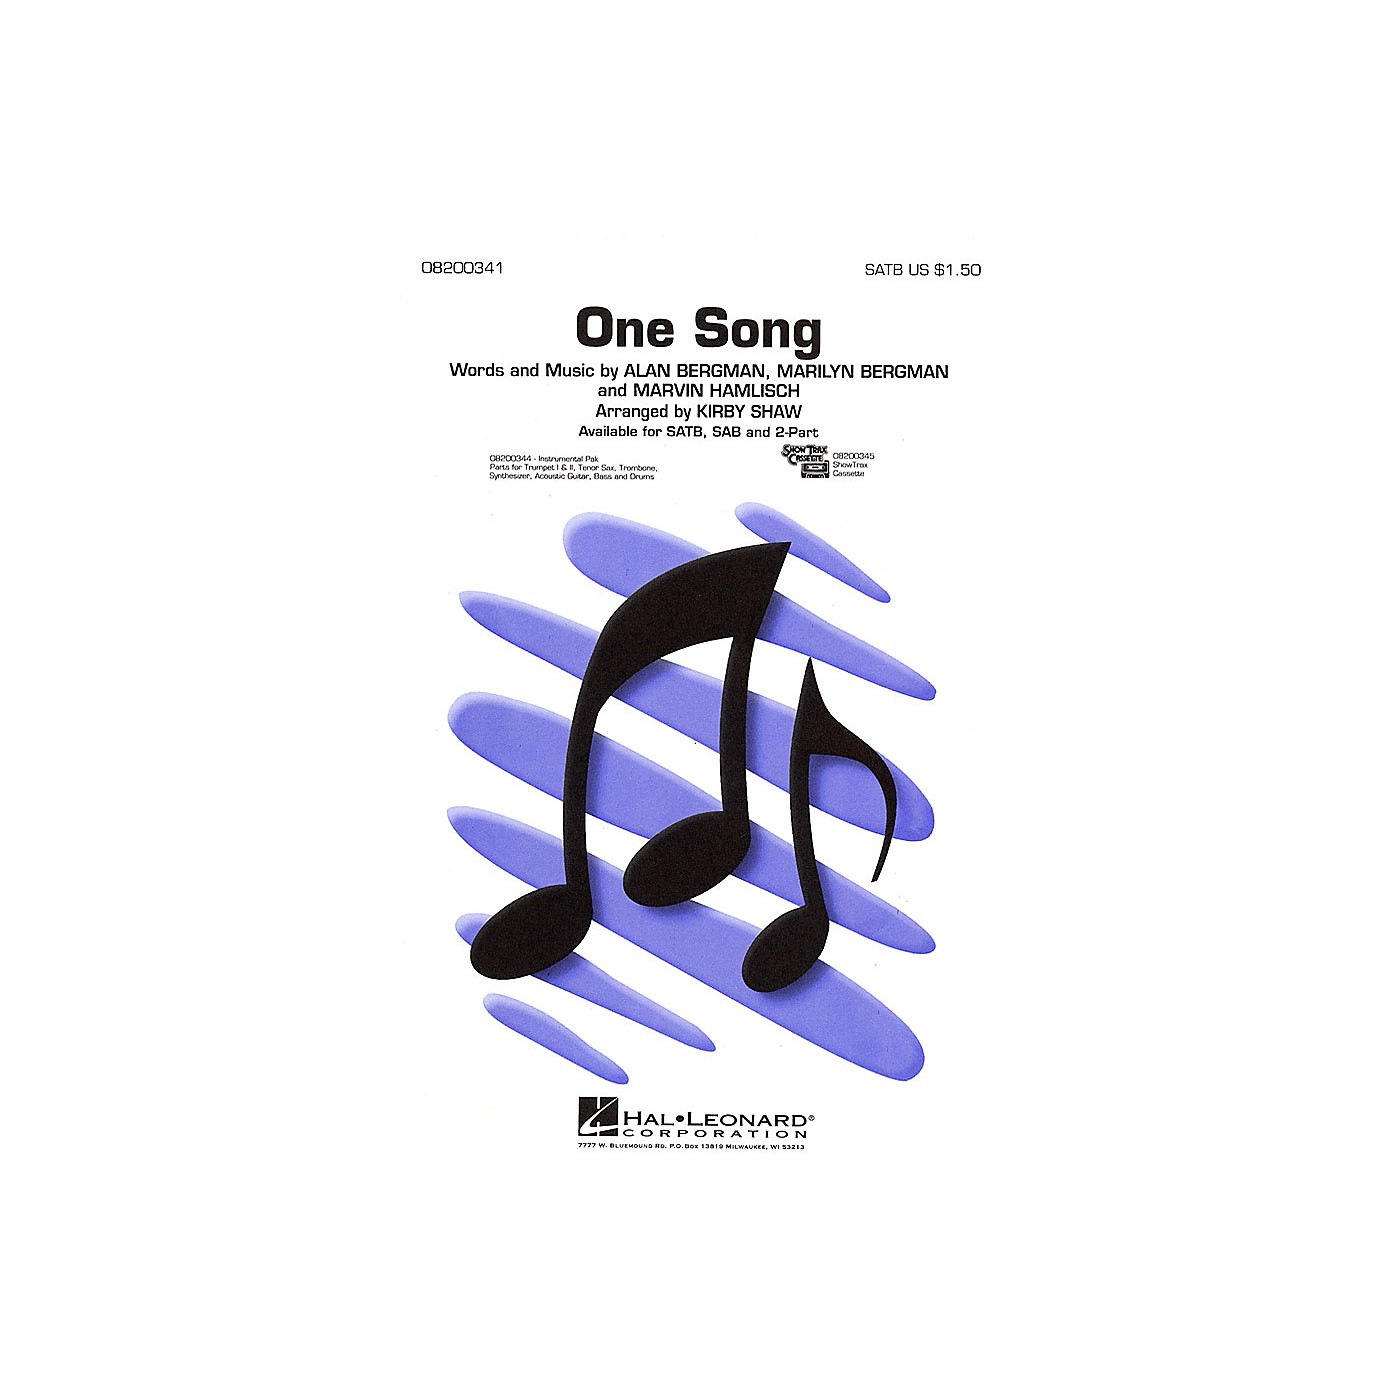 Hal Leonard One Song ShowTrax CD Arranged by Kirby Shaw thumbnail